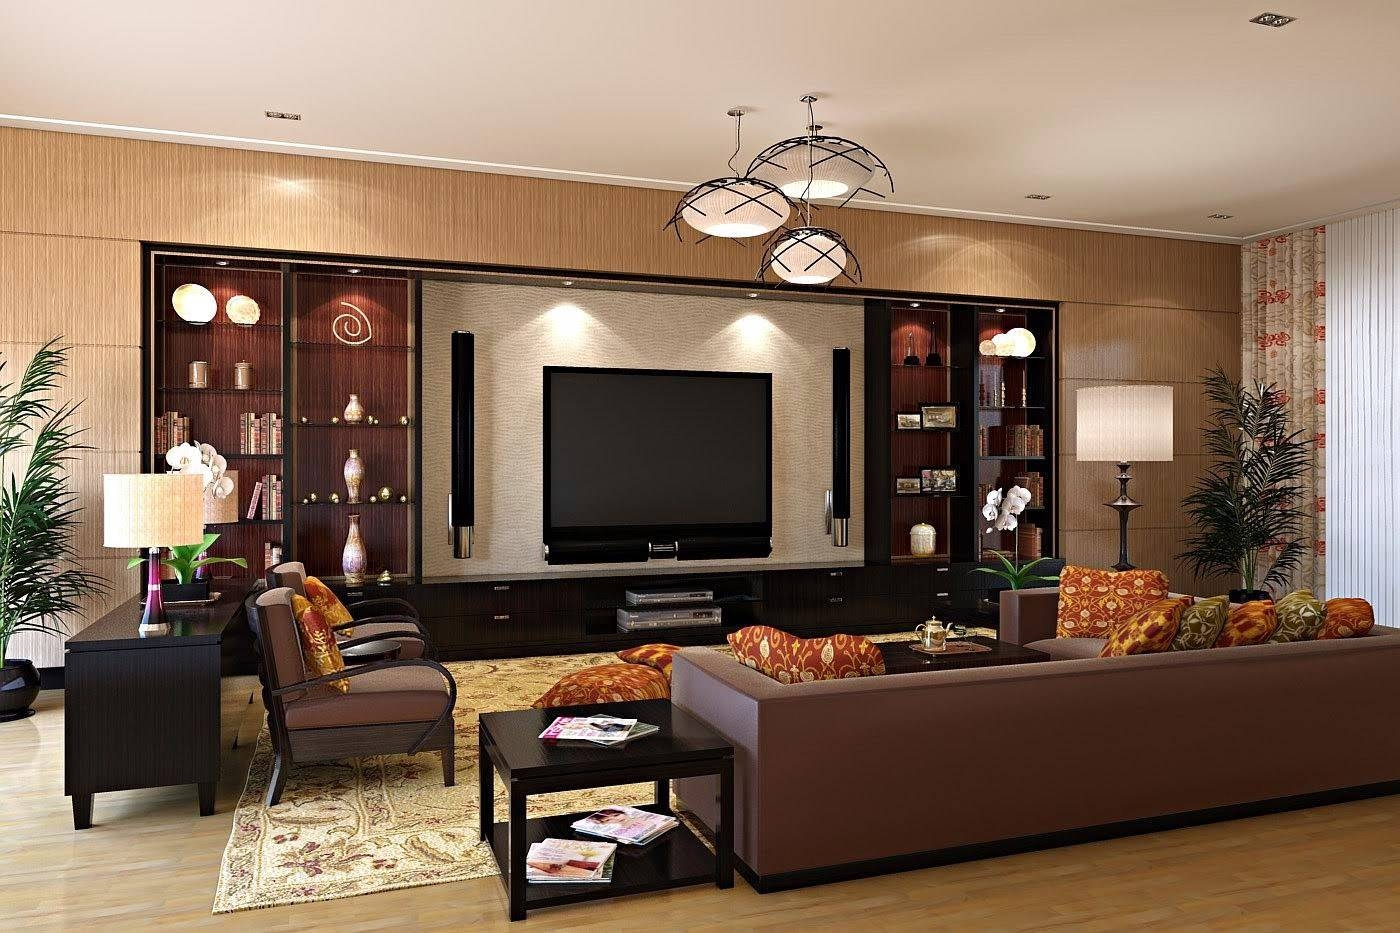 Tv Cabinet Designs For Living Room 22 Marvellous Ideas Unit Design within Big Tv Cabinets (Image 12 of 15)